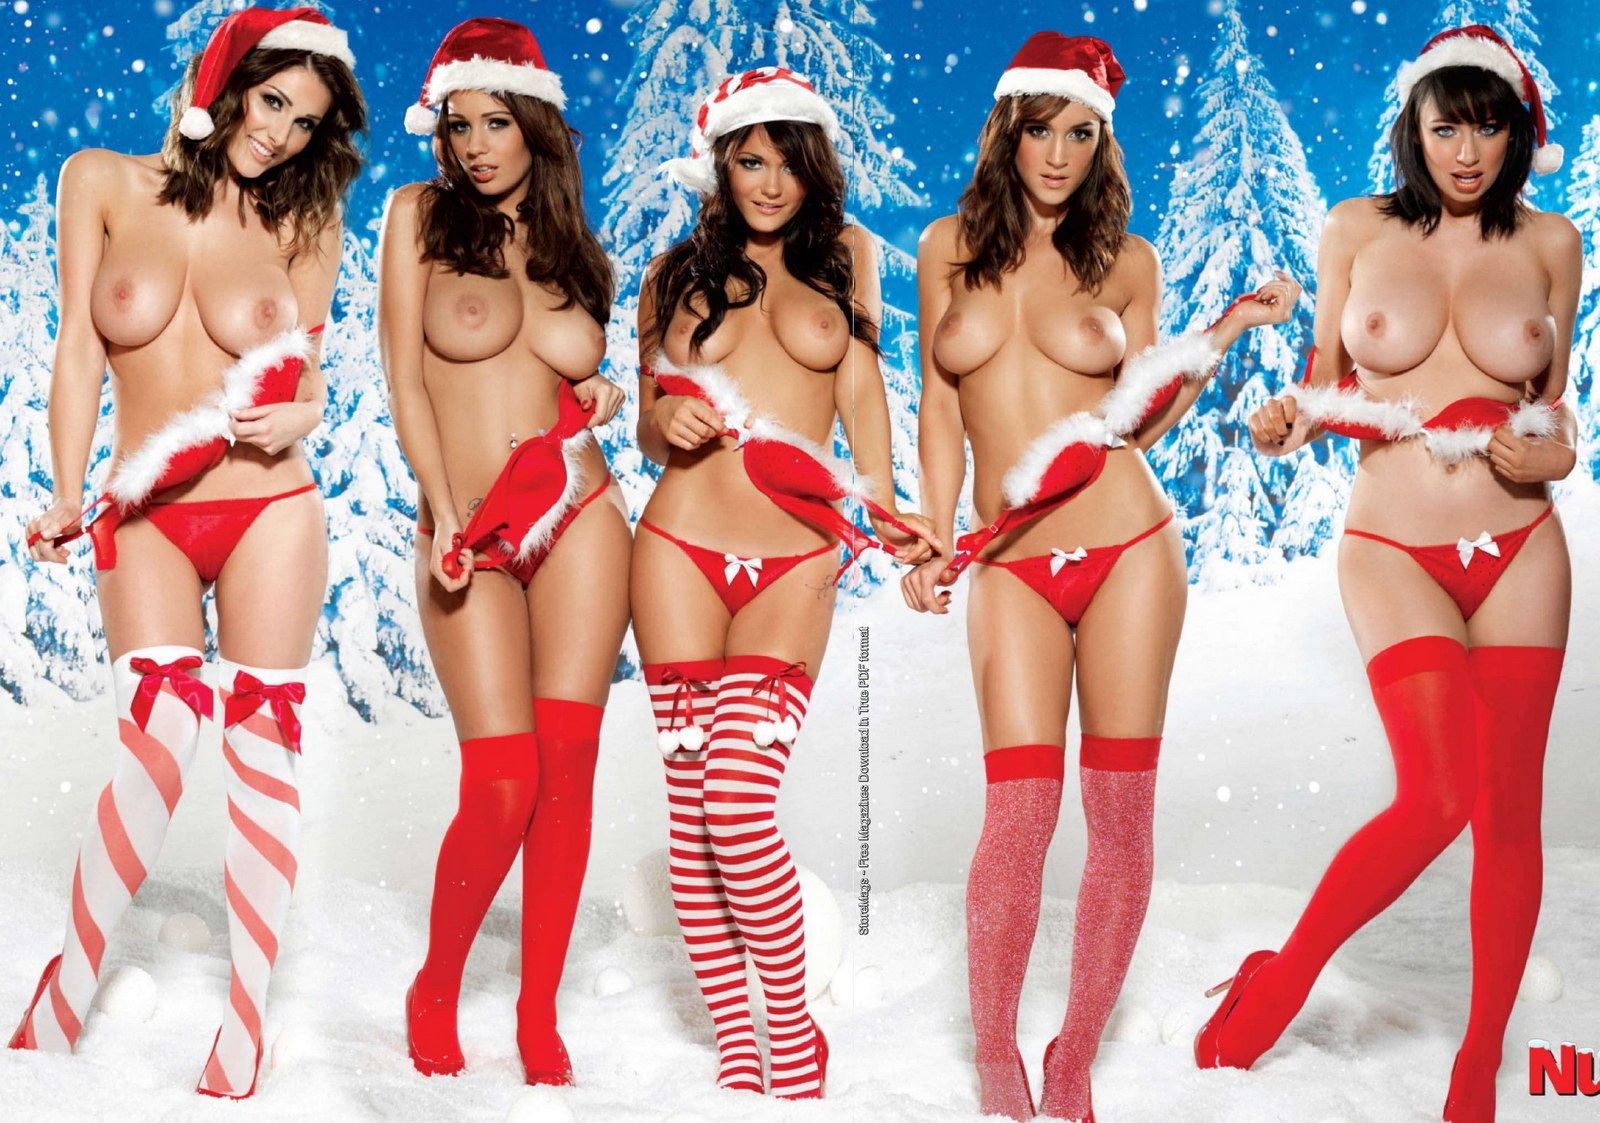 Christmas erotic nude woman s wallpaper hentai images